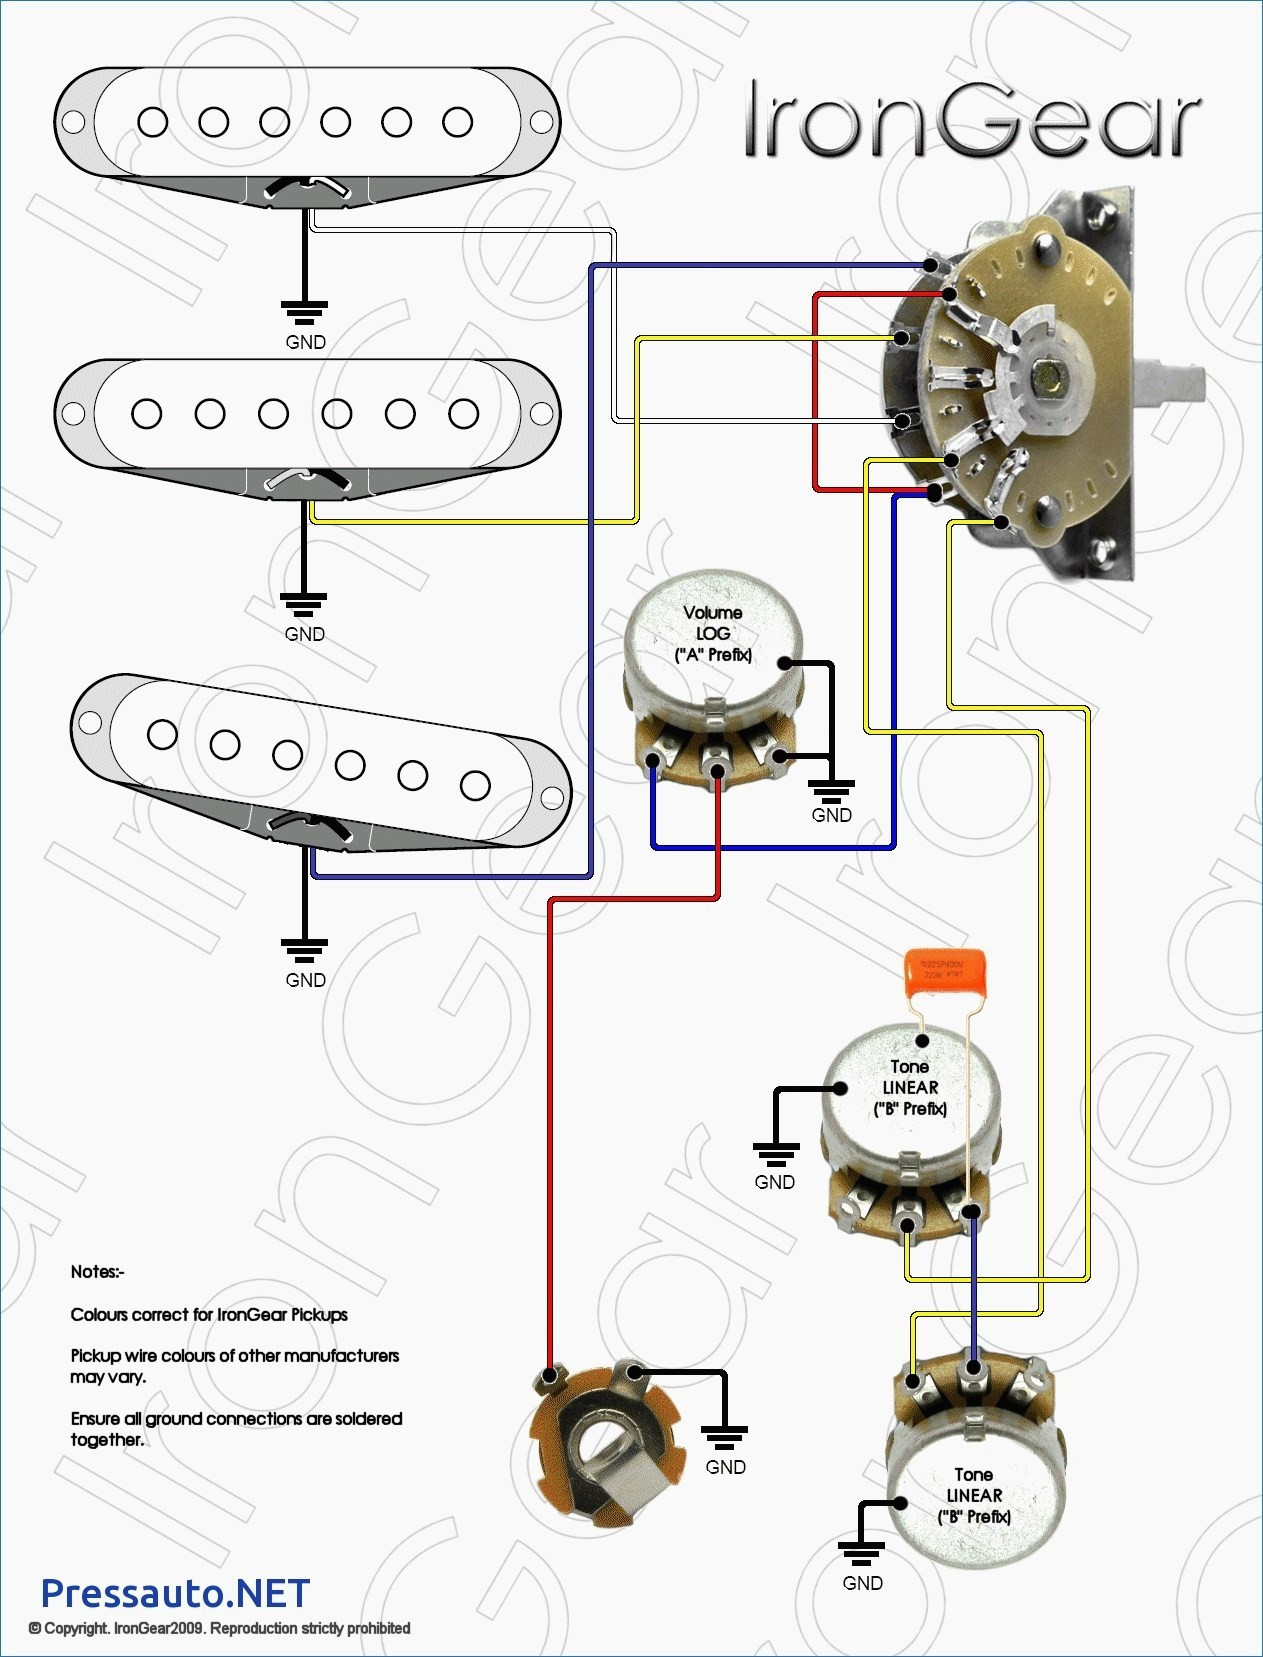 Stratocaster Wiring Diagram 3 Way Switch Simplified Shapes Strat - Strat Wiring Diagram